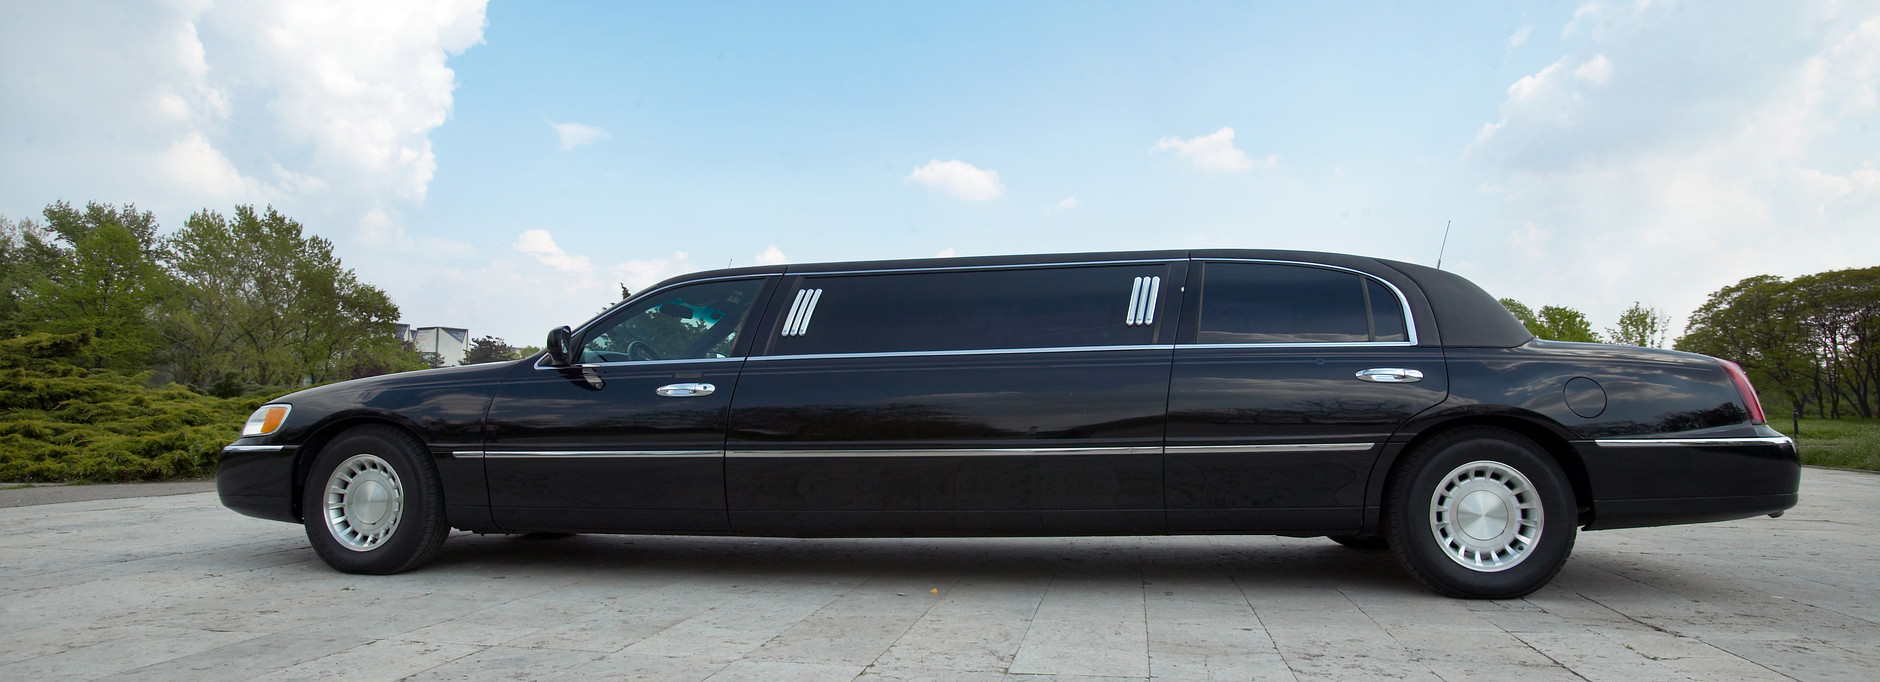 Effective Money Saving Tips to Follow When Renting a Limo For Your Prom